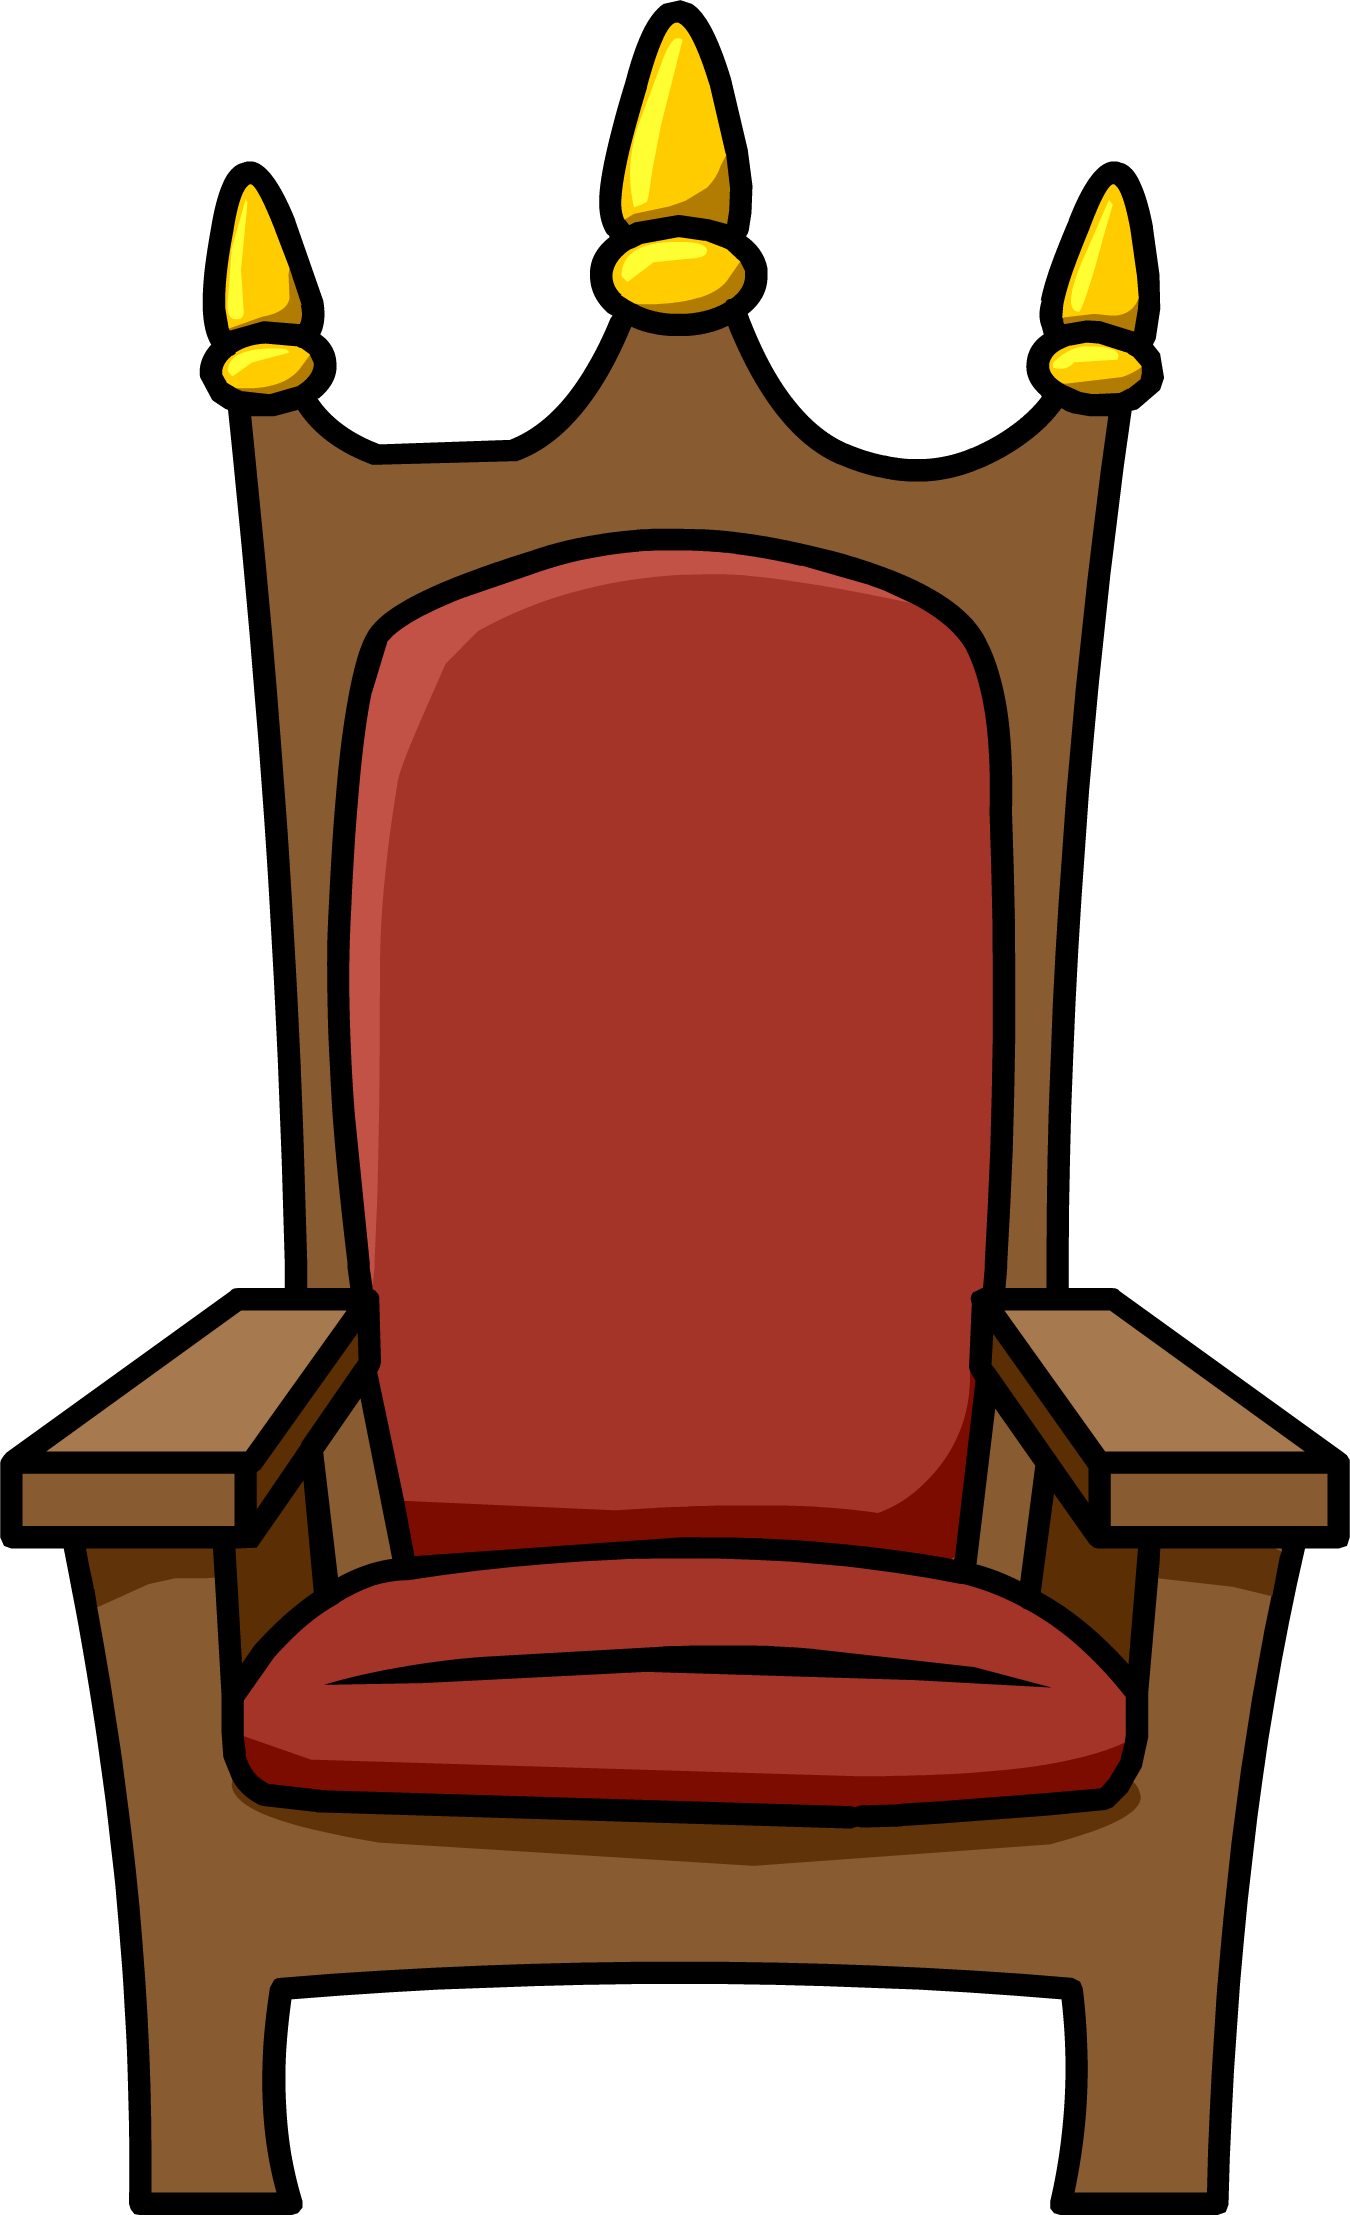 Thrones clipart vector transparent download Throne Cliparts | Free download best Throne Cliparts on ... vector transparent download